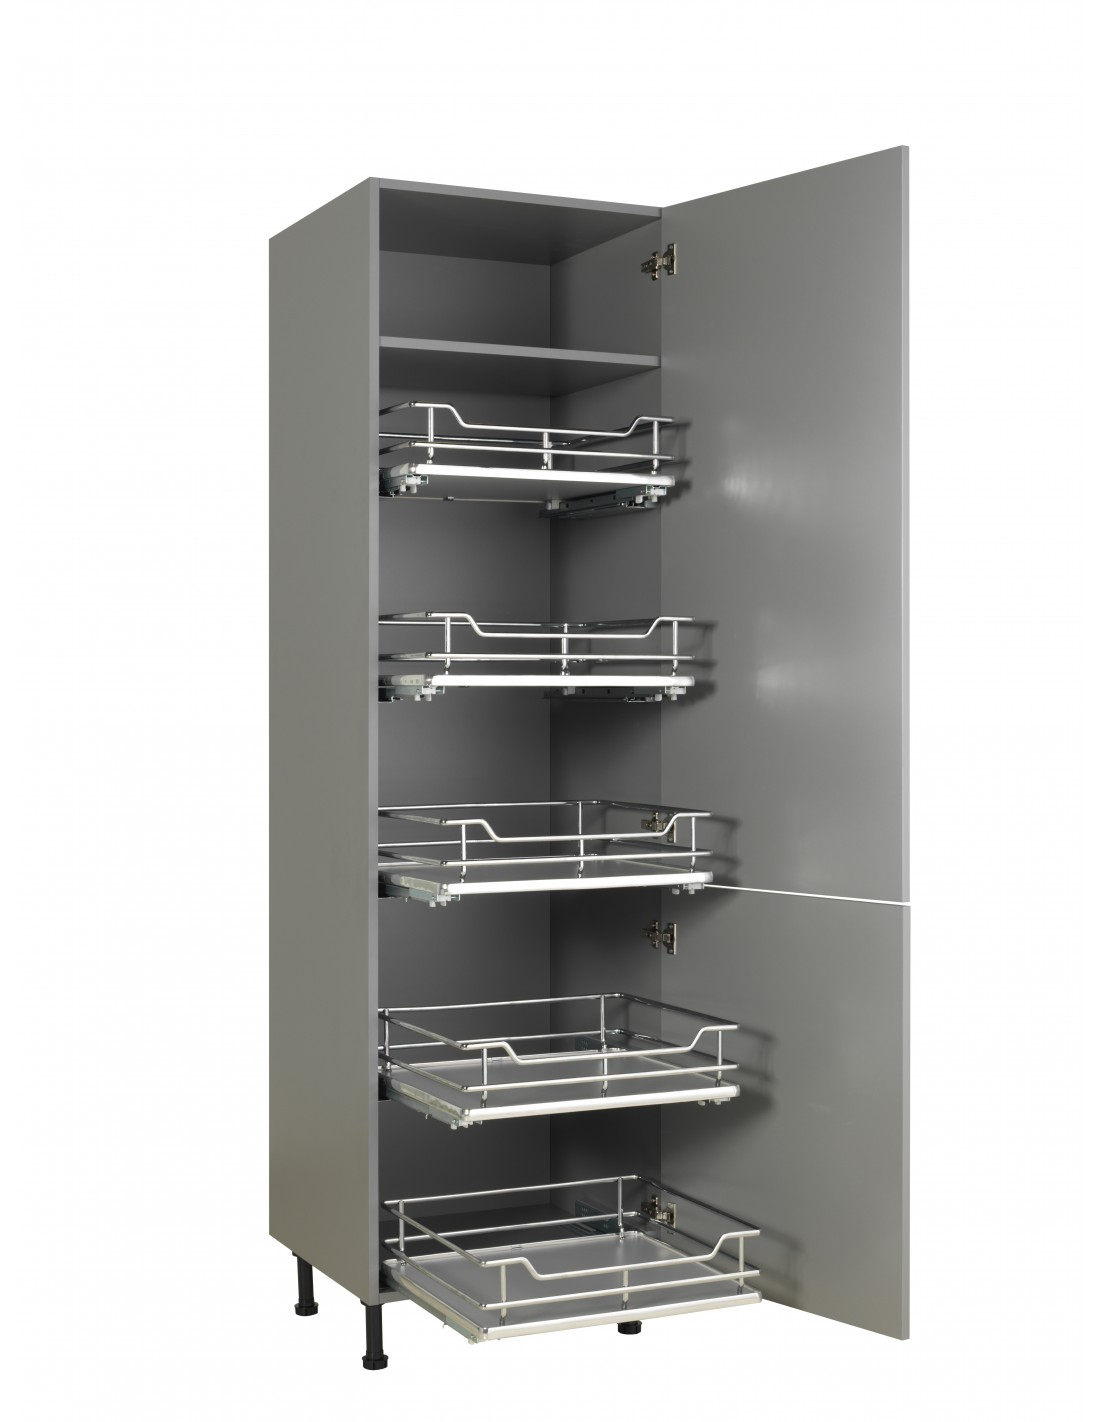 Five 300mm individual pull out shelving basket drawers for Tall kitchen drawer unit